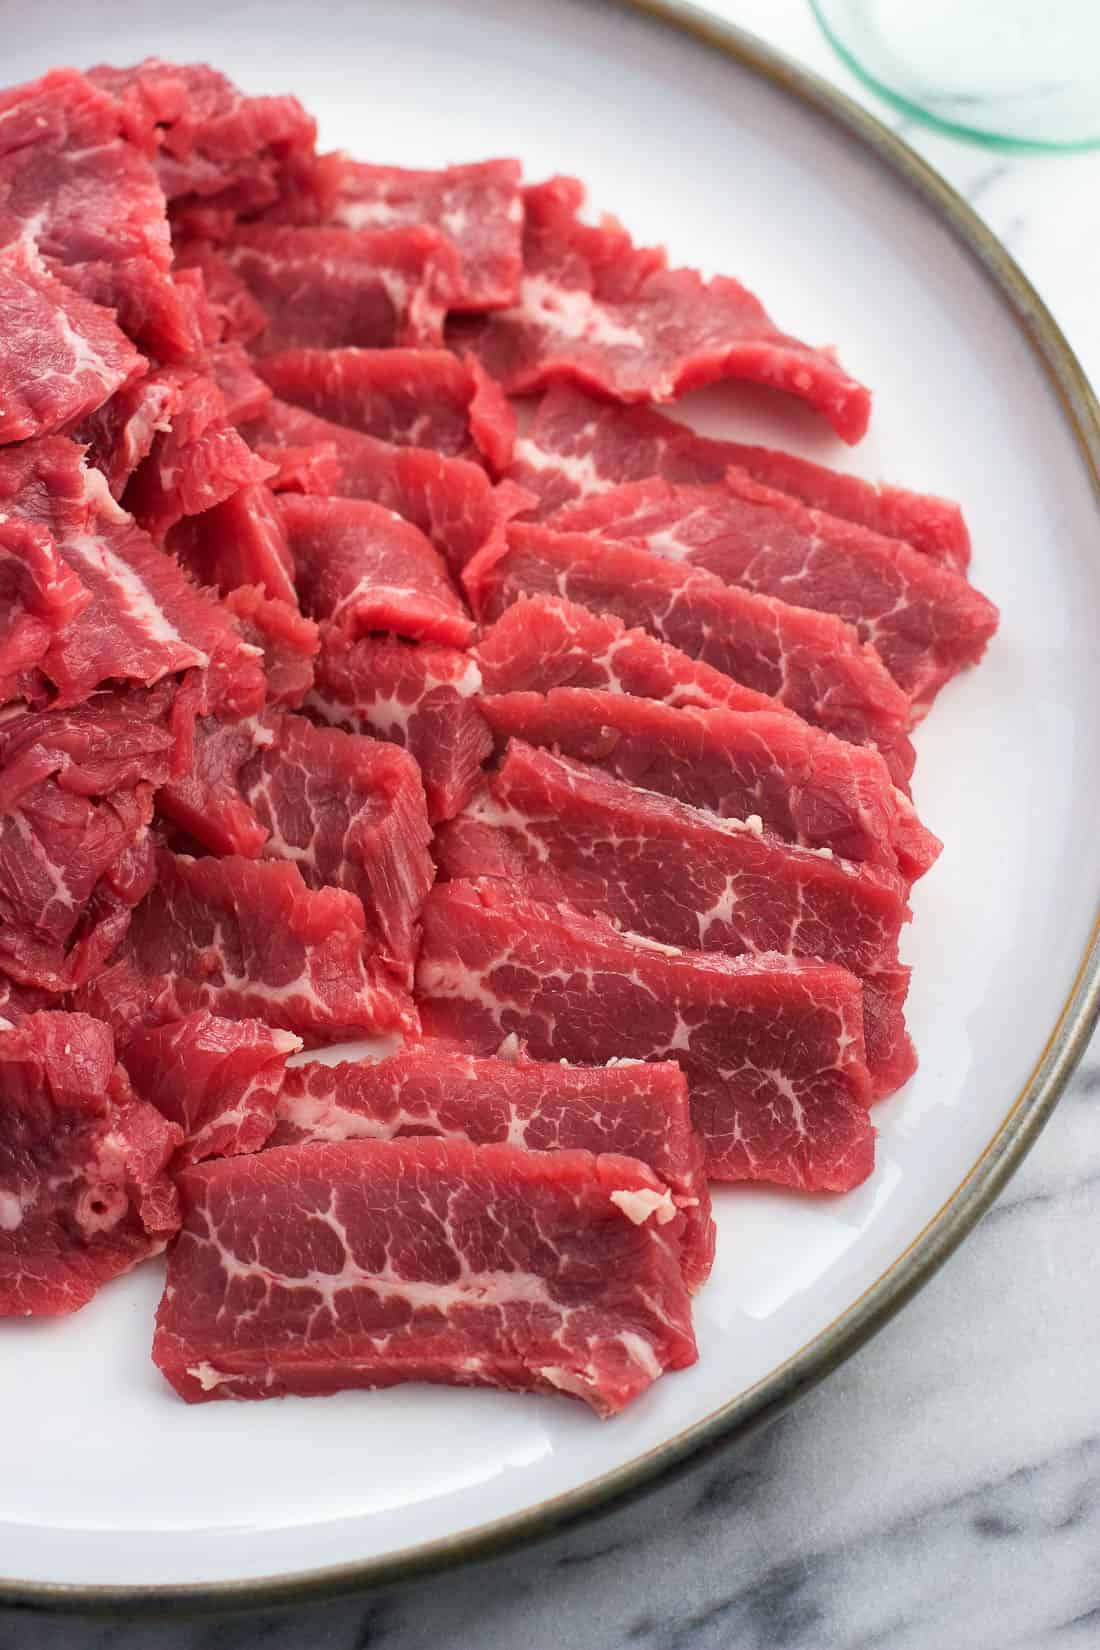 Raw strips of flank steak on a plate before being cooked.